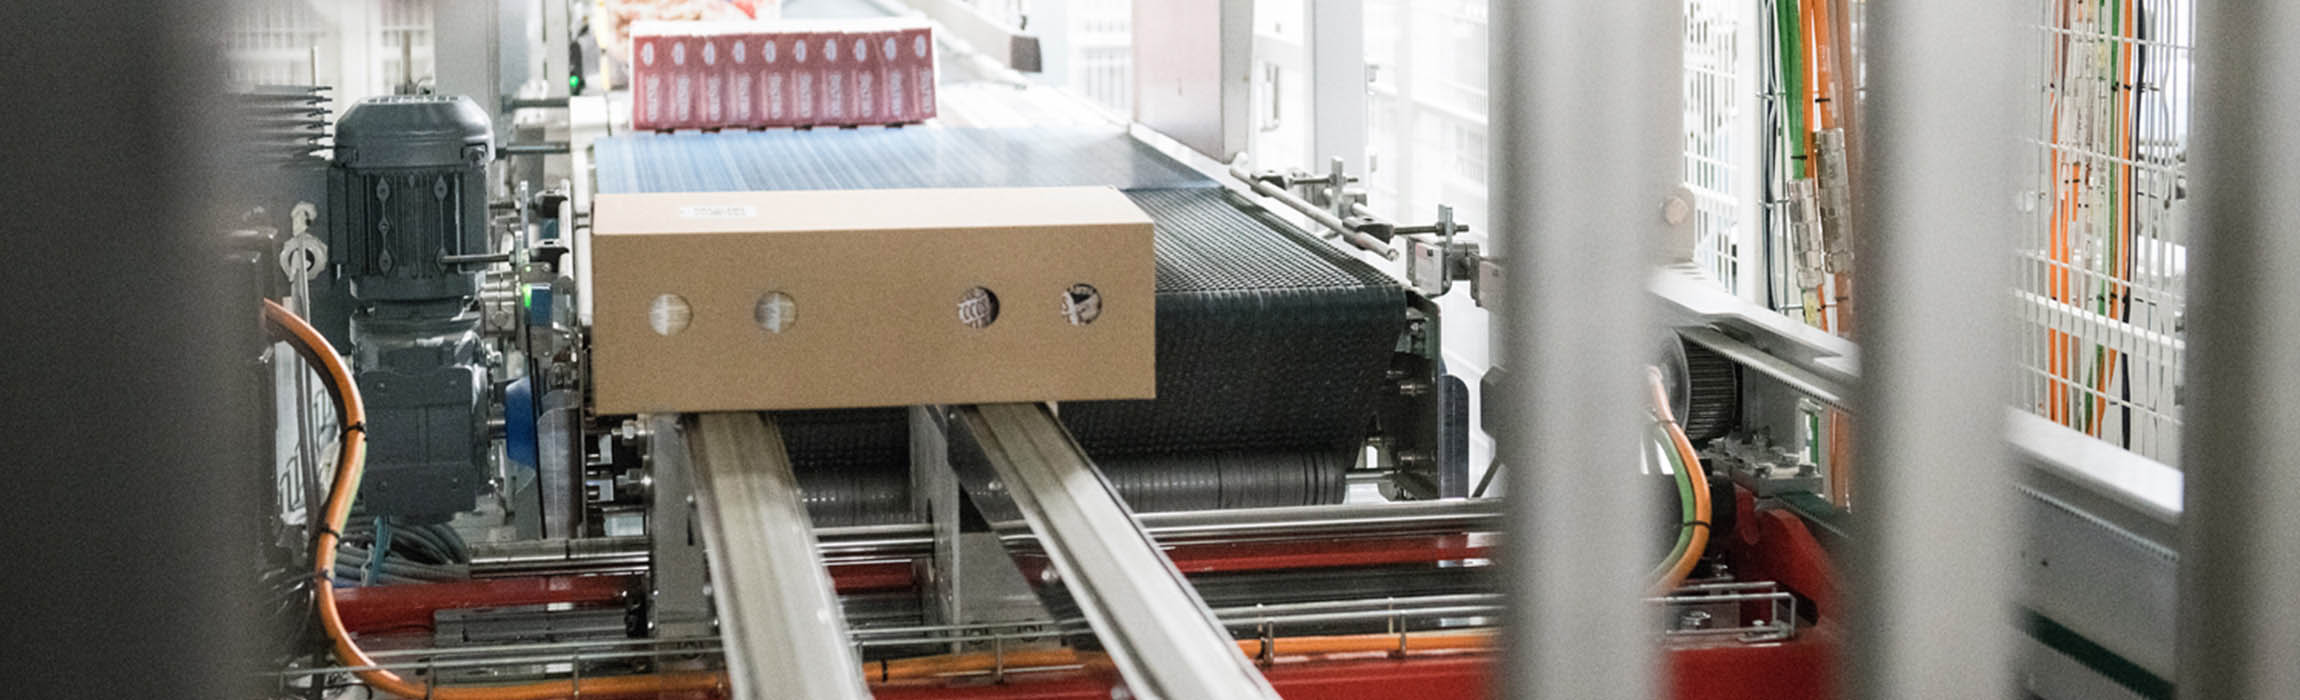 Stax is our semi-automatic and fully automatic palletizing of homogenous for your intralogistics.